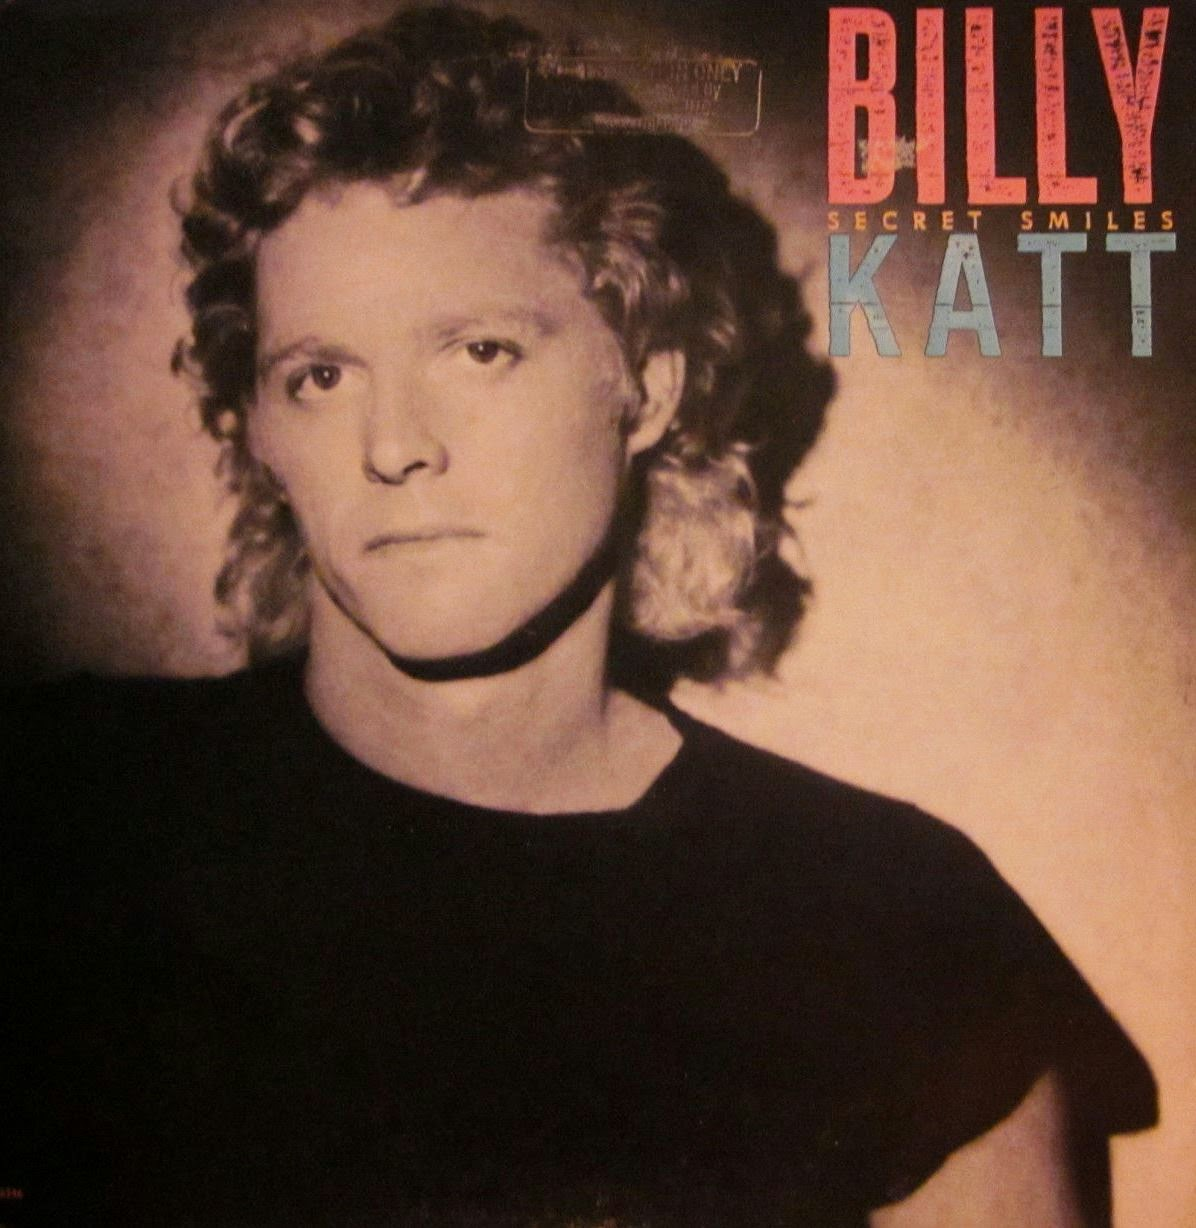 Billy Katt Secret smiles 1982 aor melodic rock west coast music blogspot bands albums